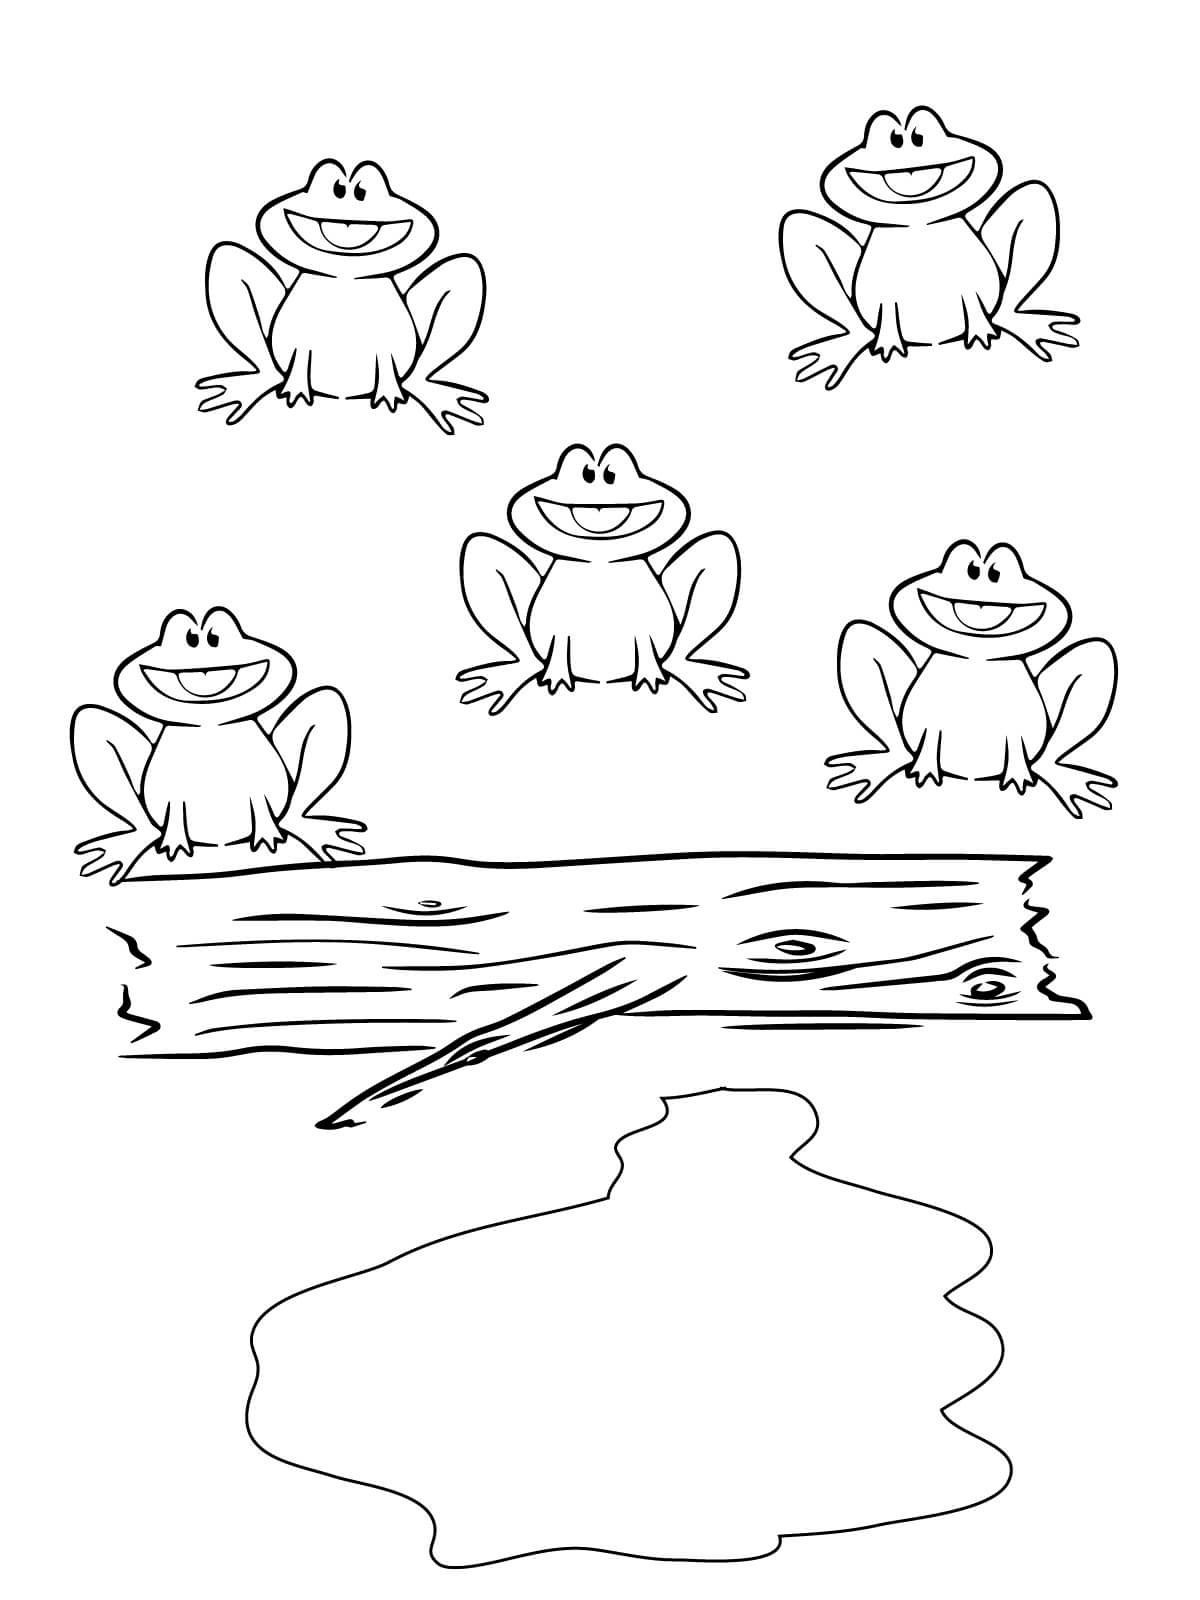 Five Little Speckled Frogs coloring